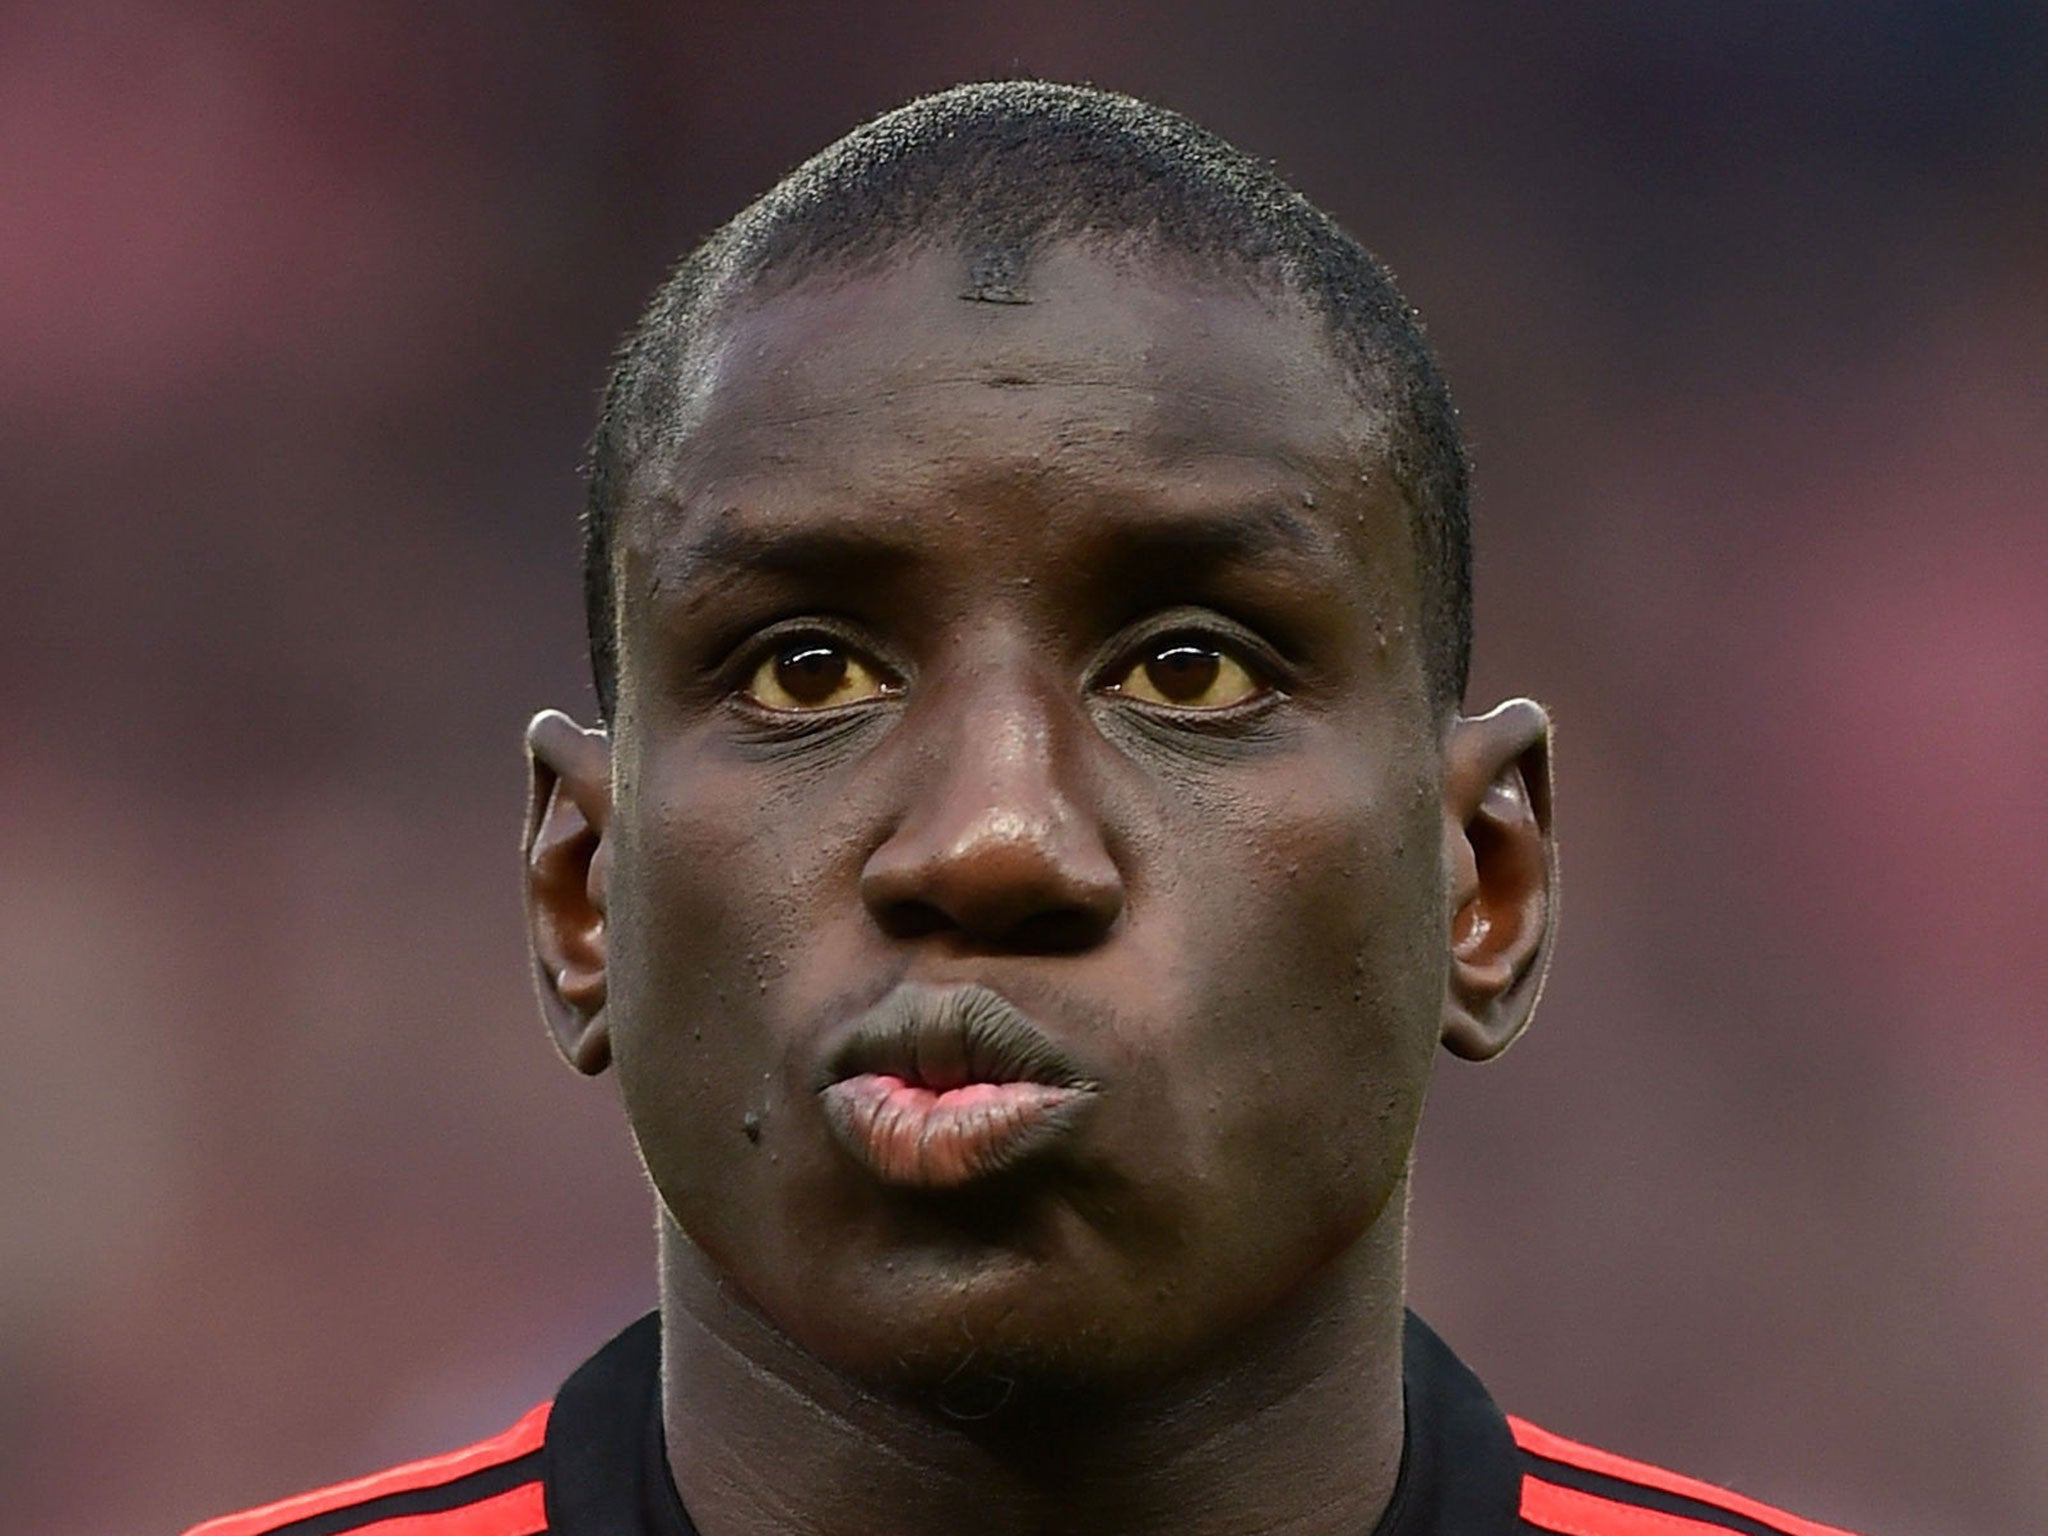 Demba Ba earned a  million dollar salary, leaving the net worth at 8 million in 2017